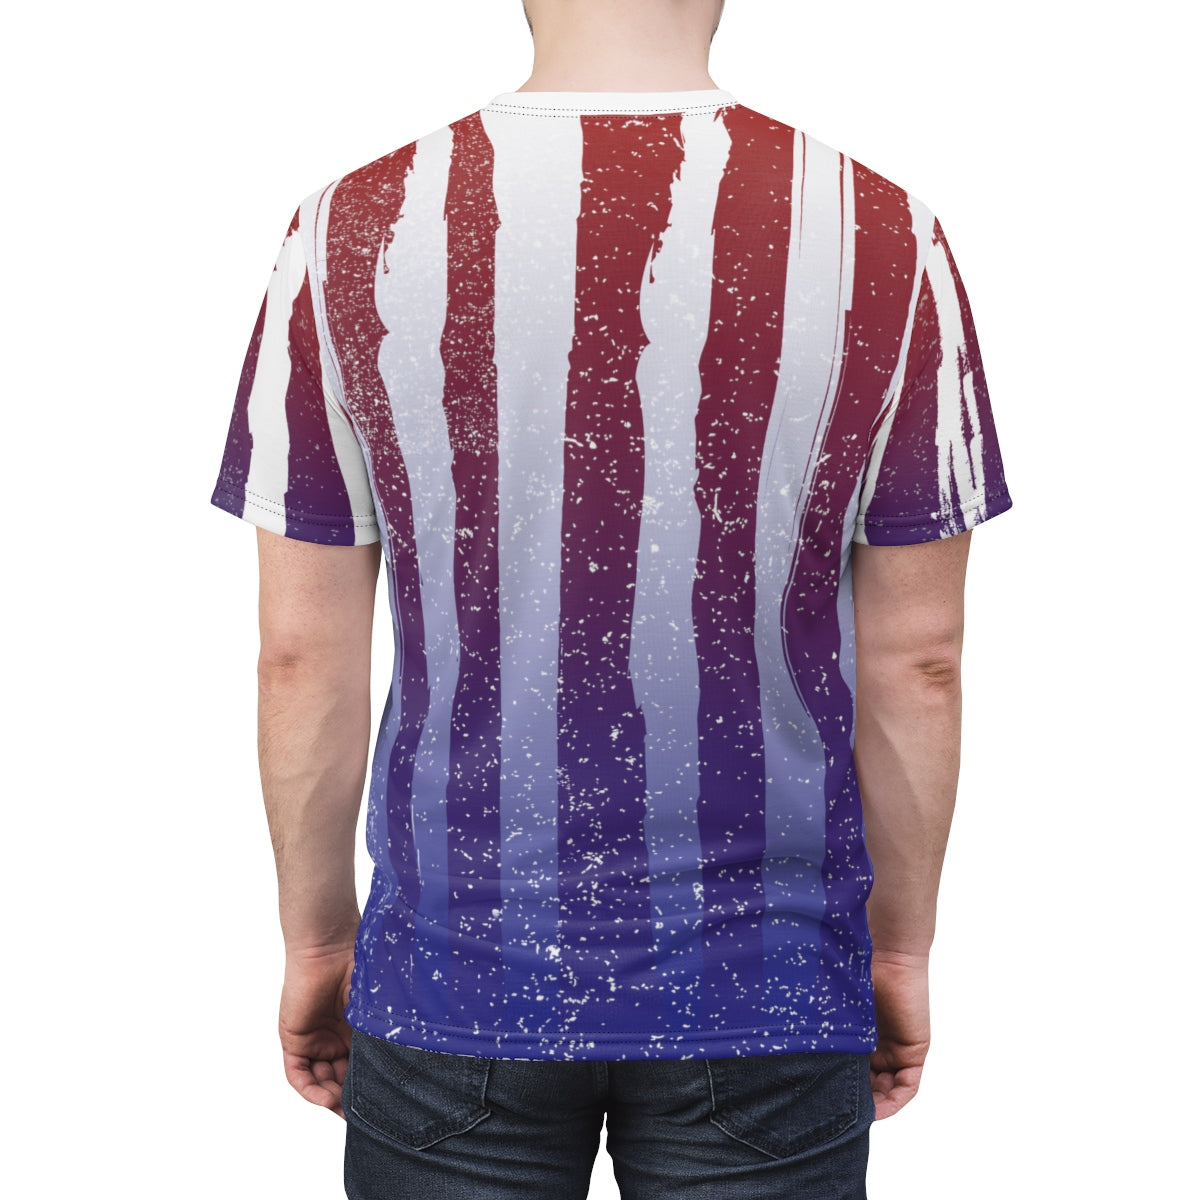 Be Proud - UsFlag Tee - Unisex